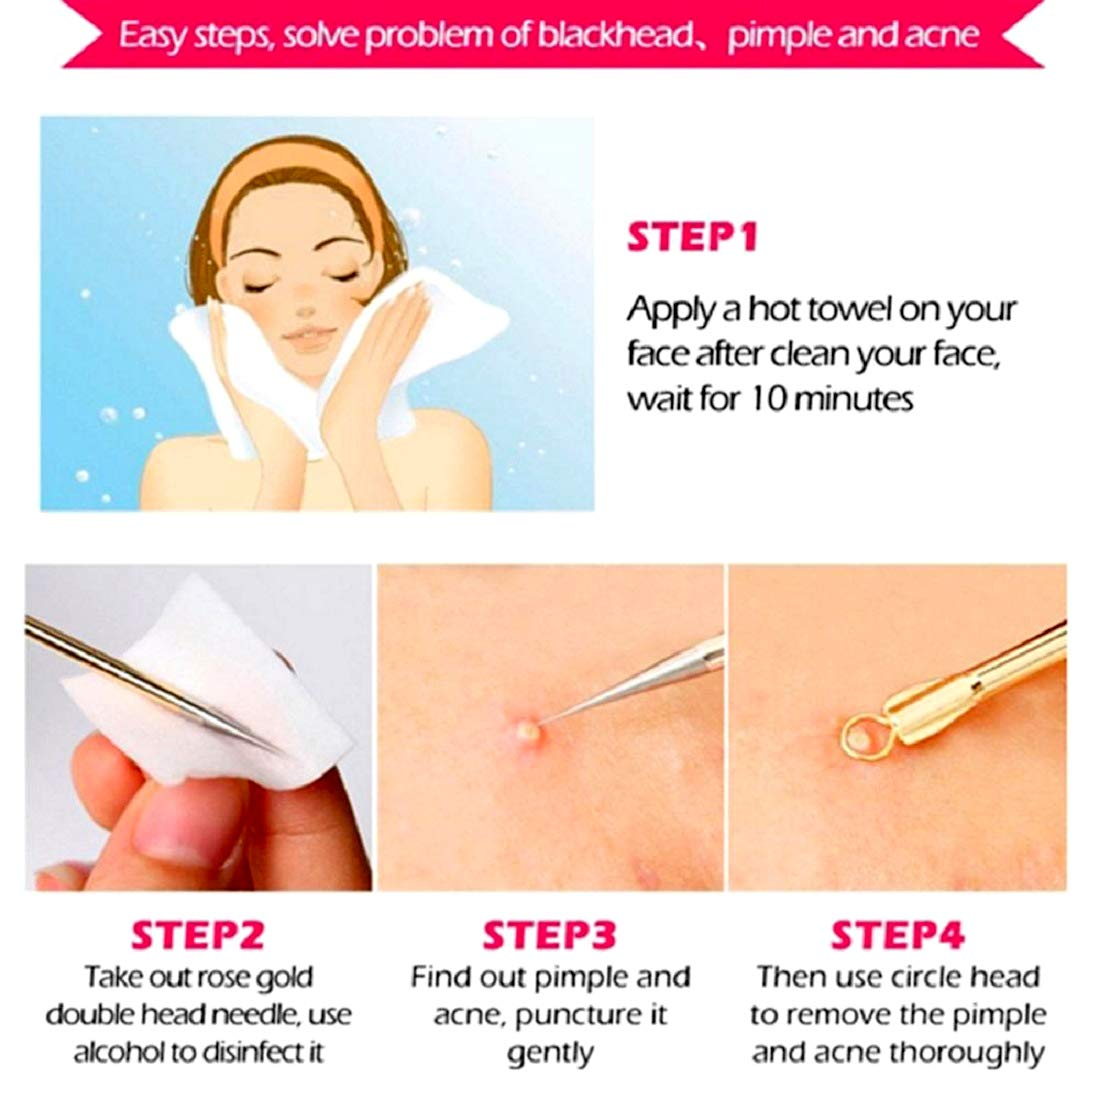 Blackhead Remover Pimple Comedone Extractor Tool Best Acne Removal Kit - Treatment for Blemish, Whitehead Popping, Zit Removing for Risk Free Nose Face Skin, Electroplated Best Seller 4 PCS w/case.: Beauty